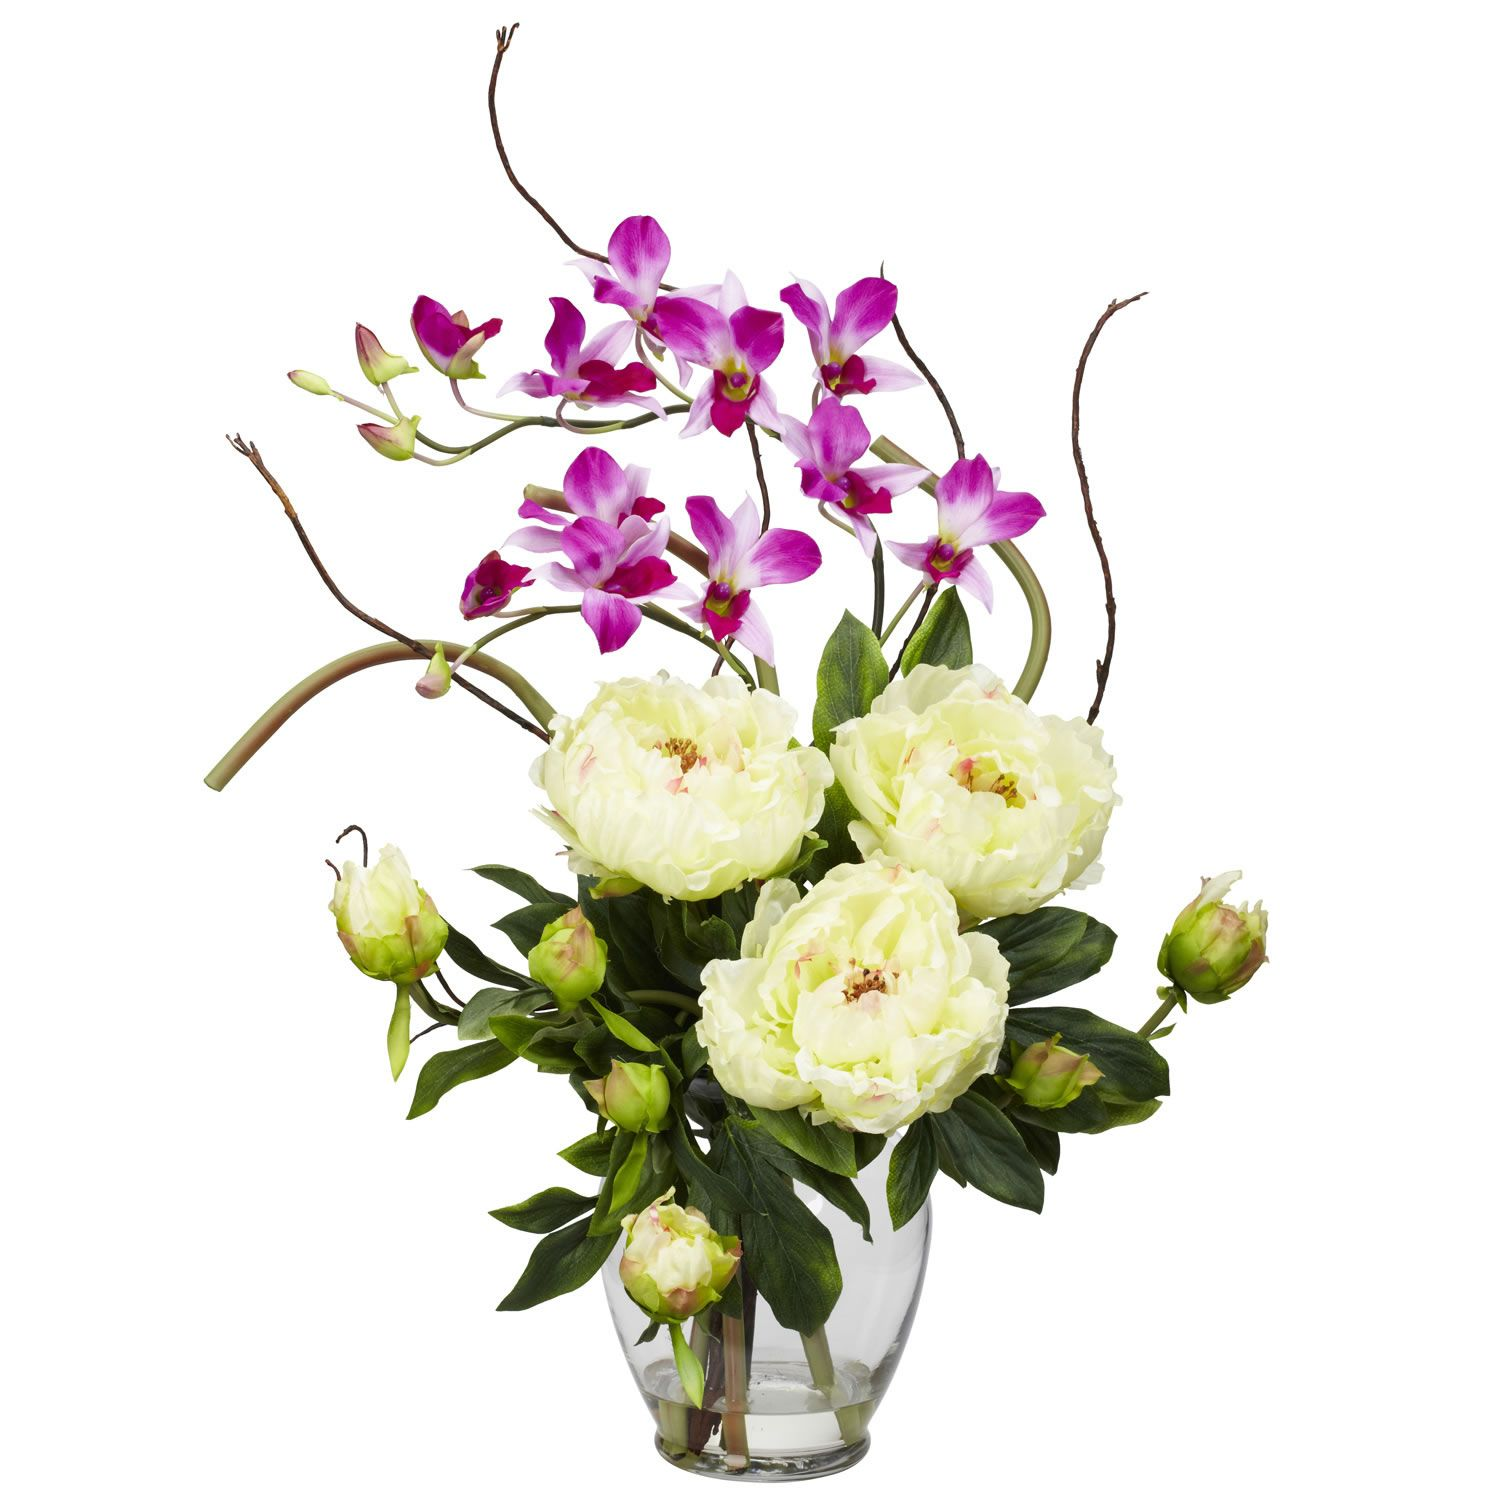 Silk flower arrangements roll over product image to zoom in silk flower arrangements roll over product image to zoom in dhlflorist Images